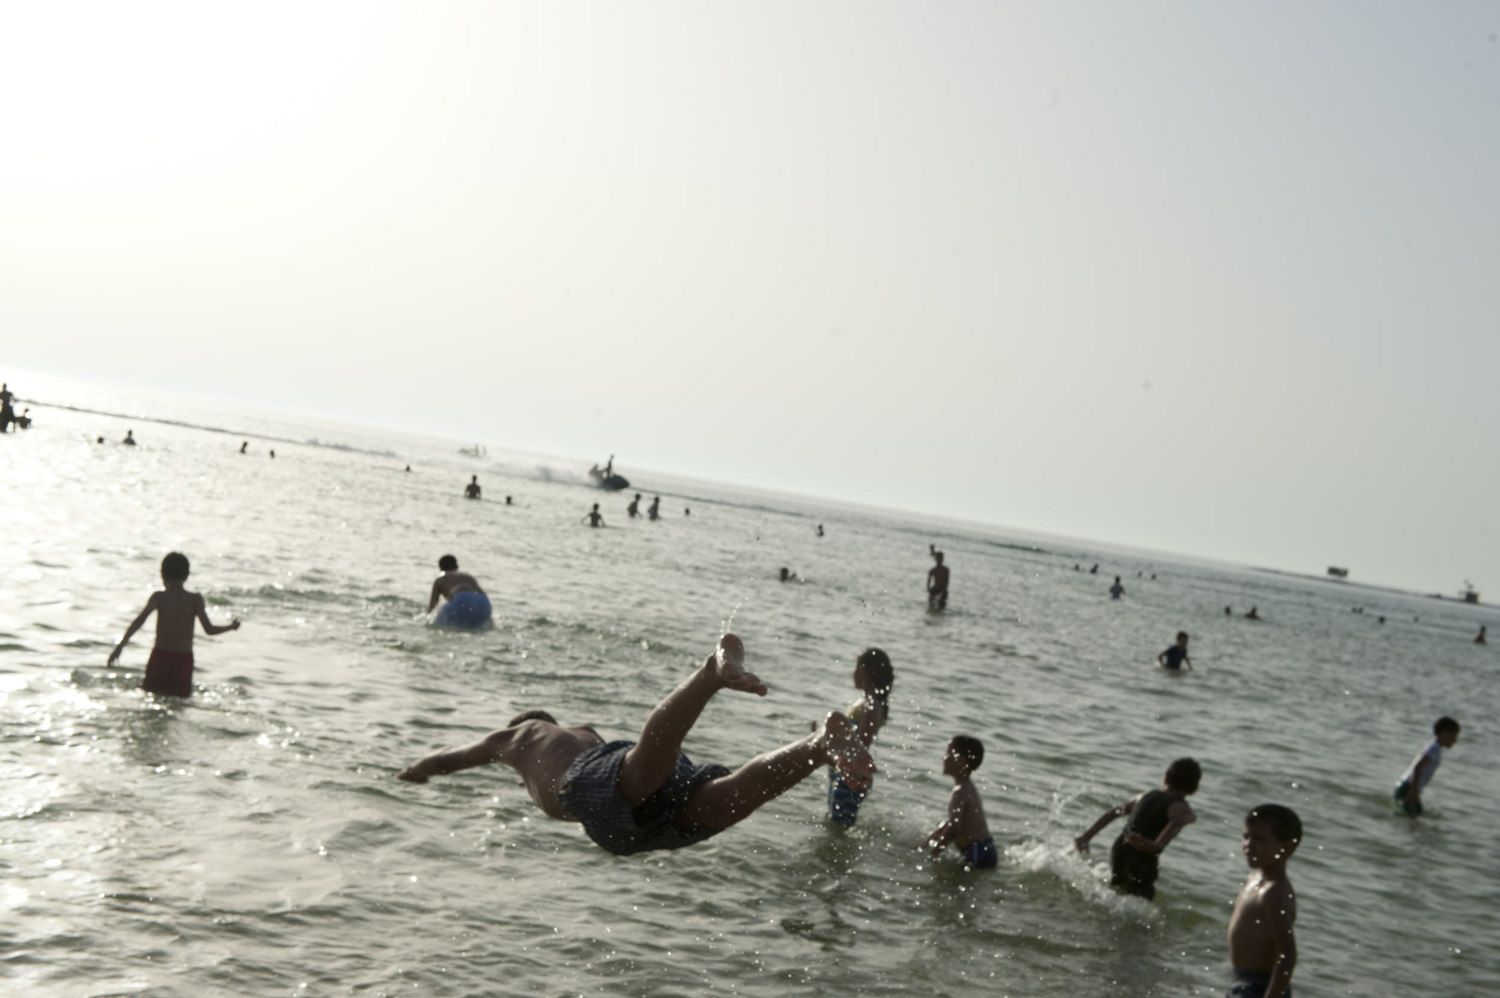 Boys escape the summer heat by diving into the ocean in downtown Tripoli on July 1st, 2012.